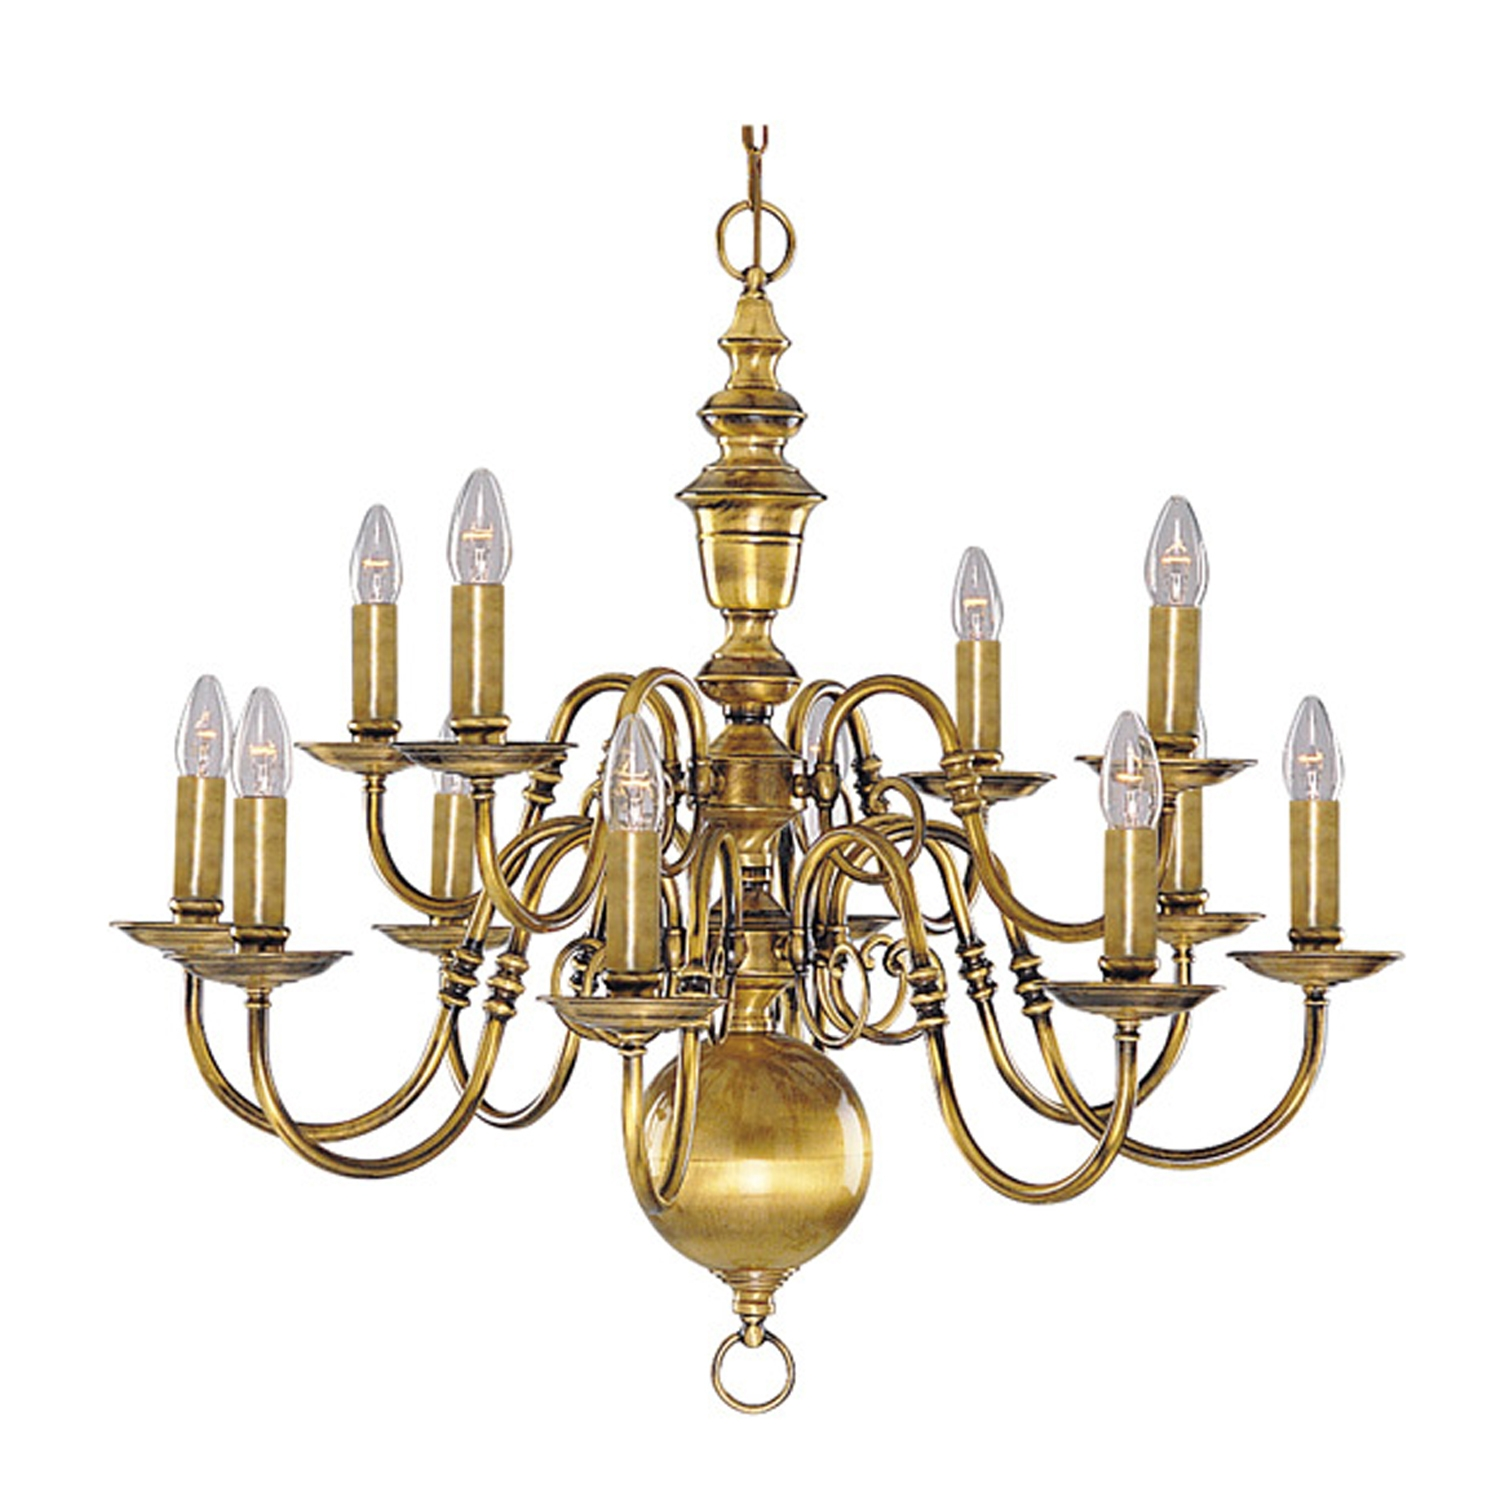 Brass Chandelier Home Designs For Old Brass Chandelier (#7 of 12)